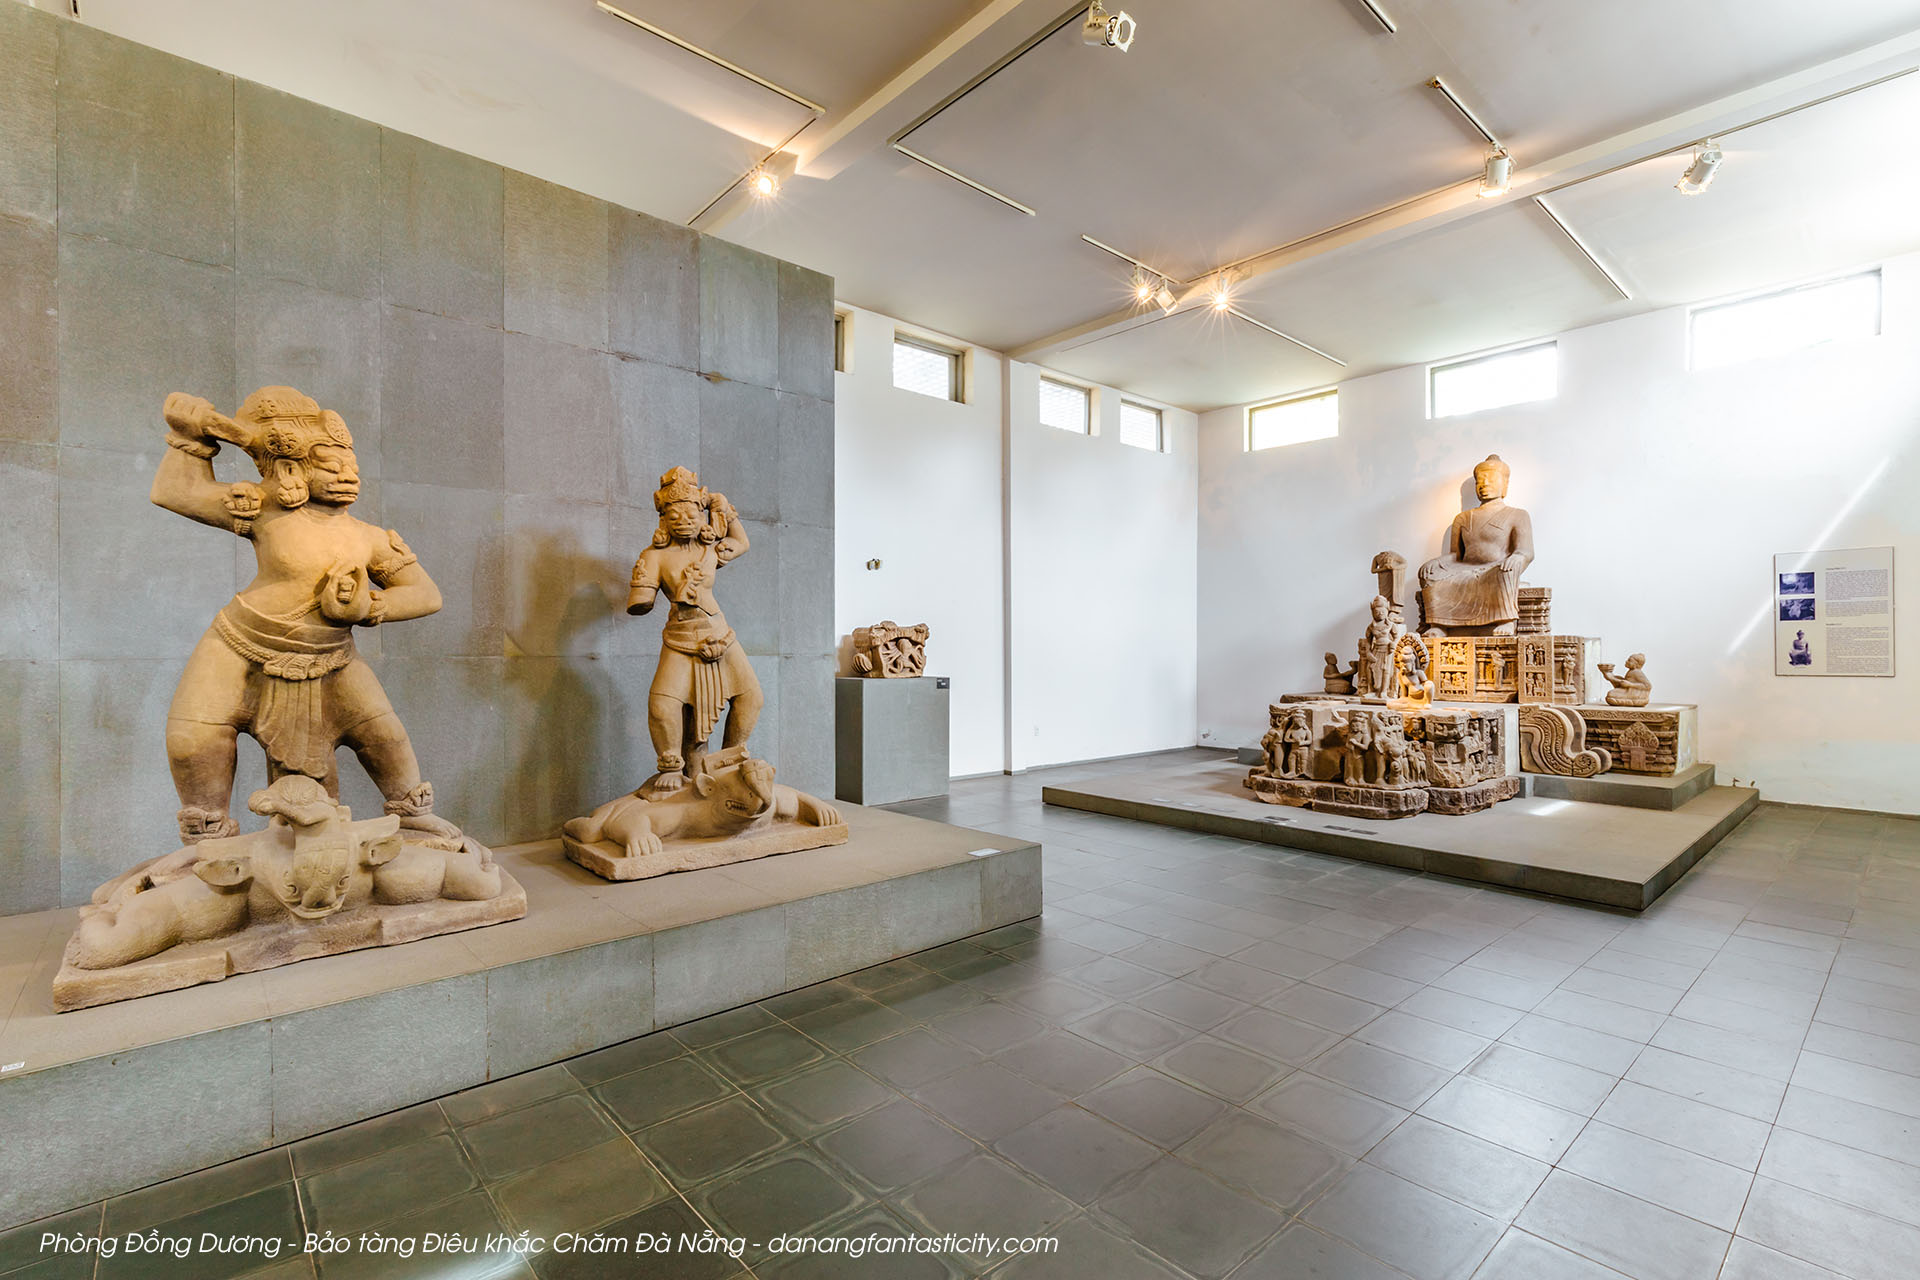 3d Scanning Trial Experience Explore The Timeless Values At Danang Musem Of Cham Sculpture